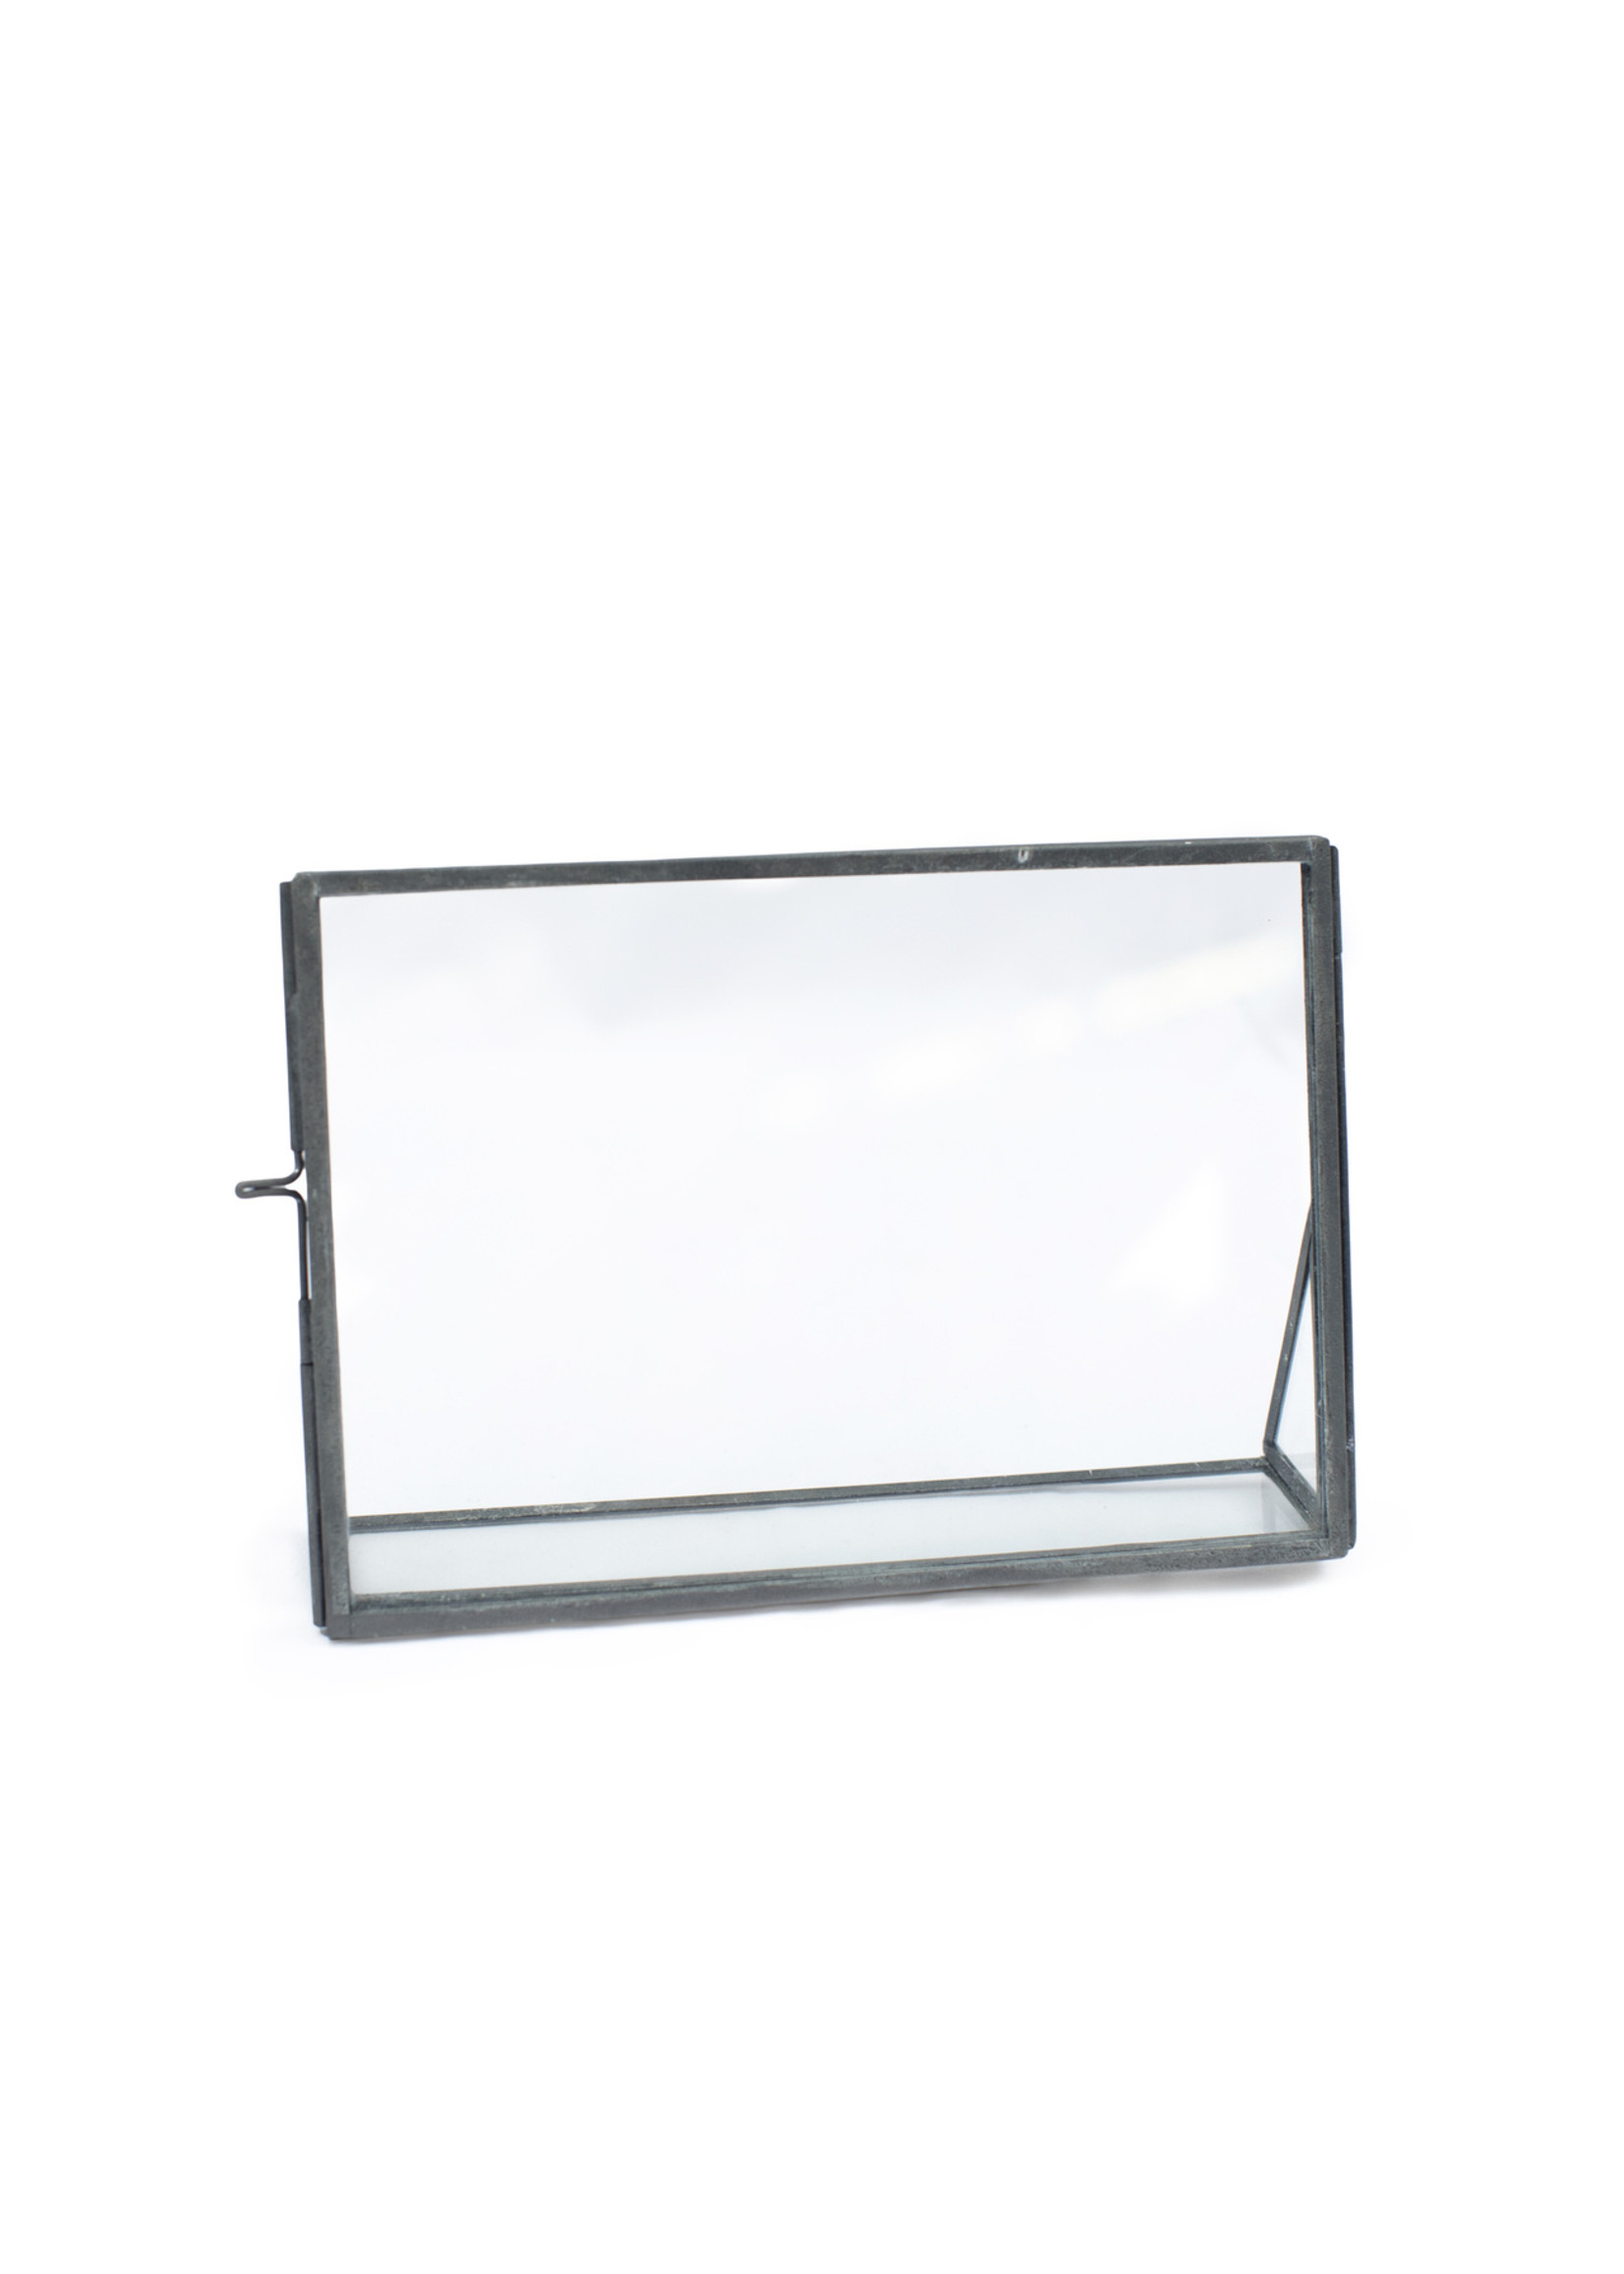 Sugarboo Horizontal Floating Glass Frame with Glass Stand